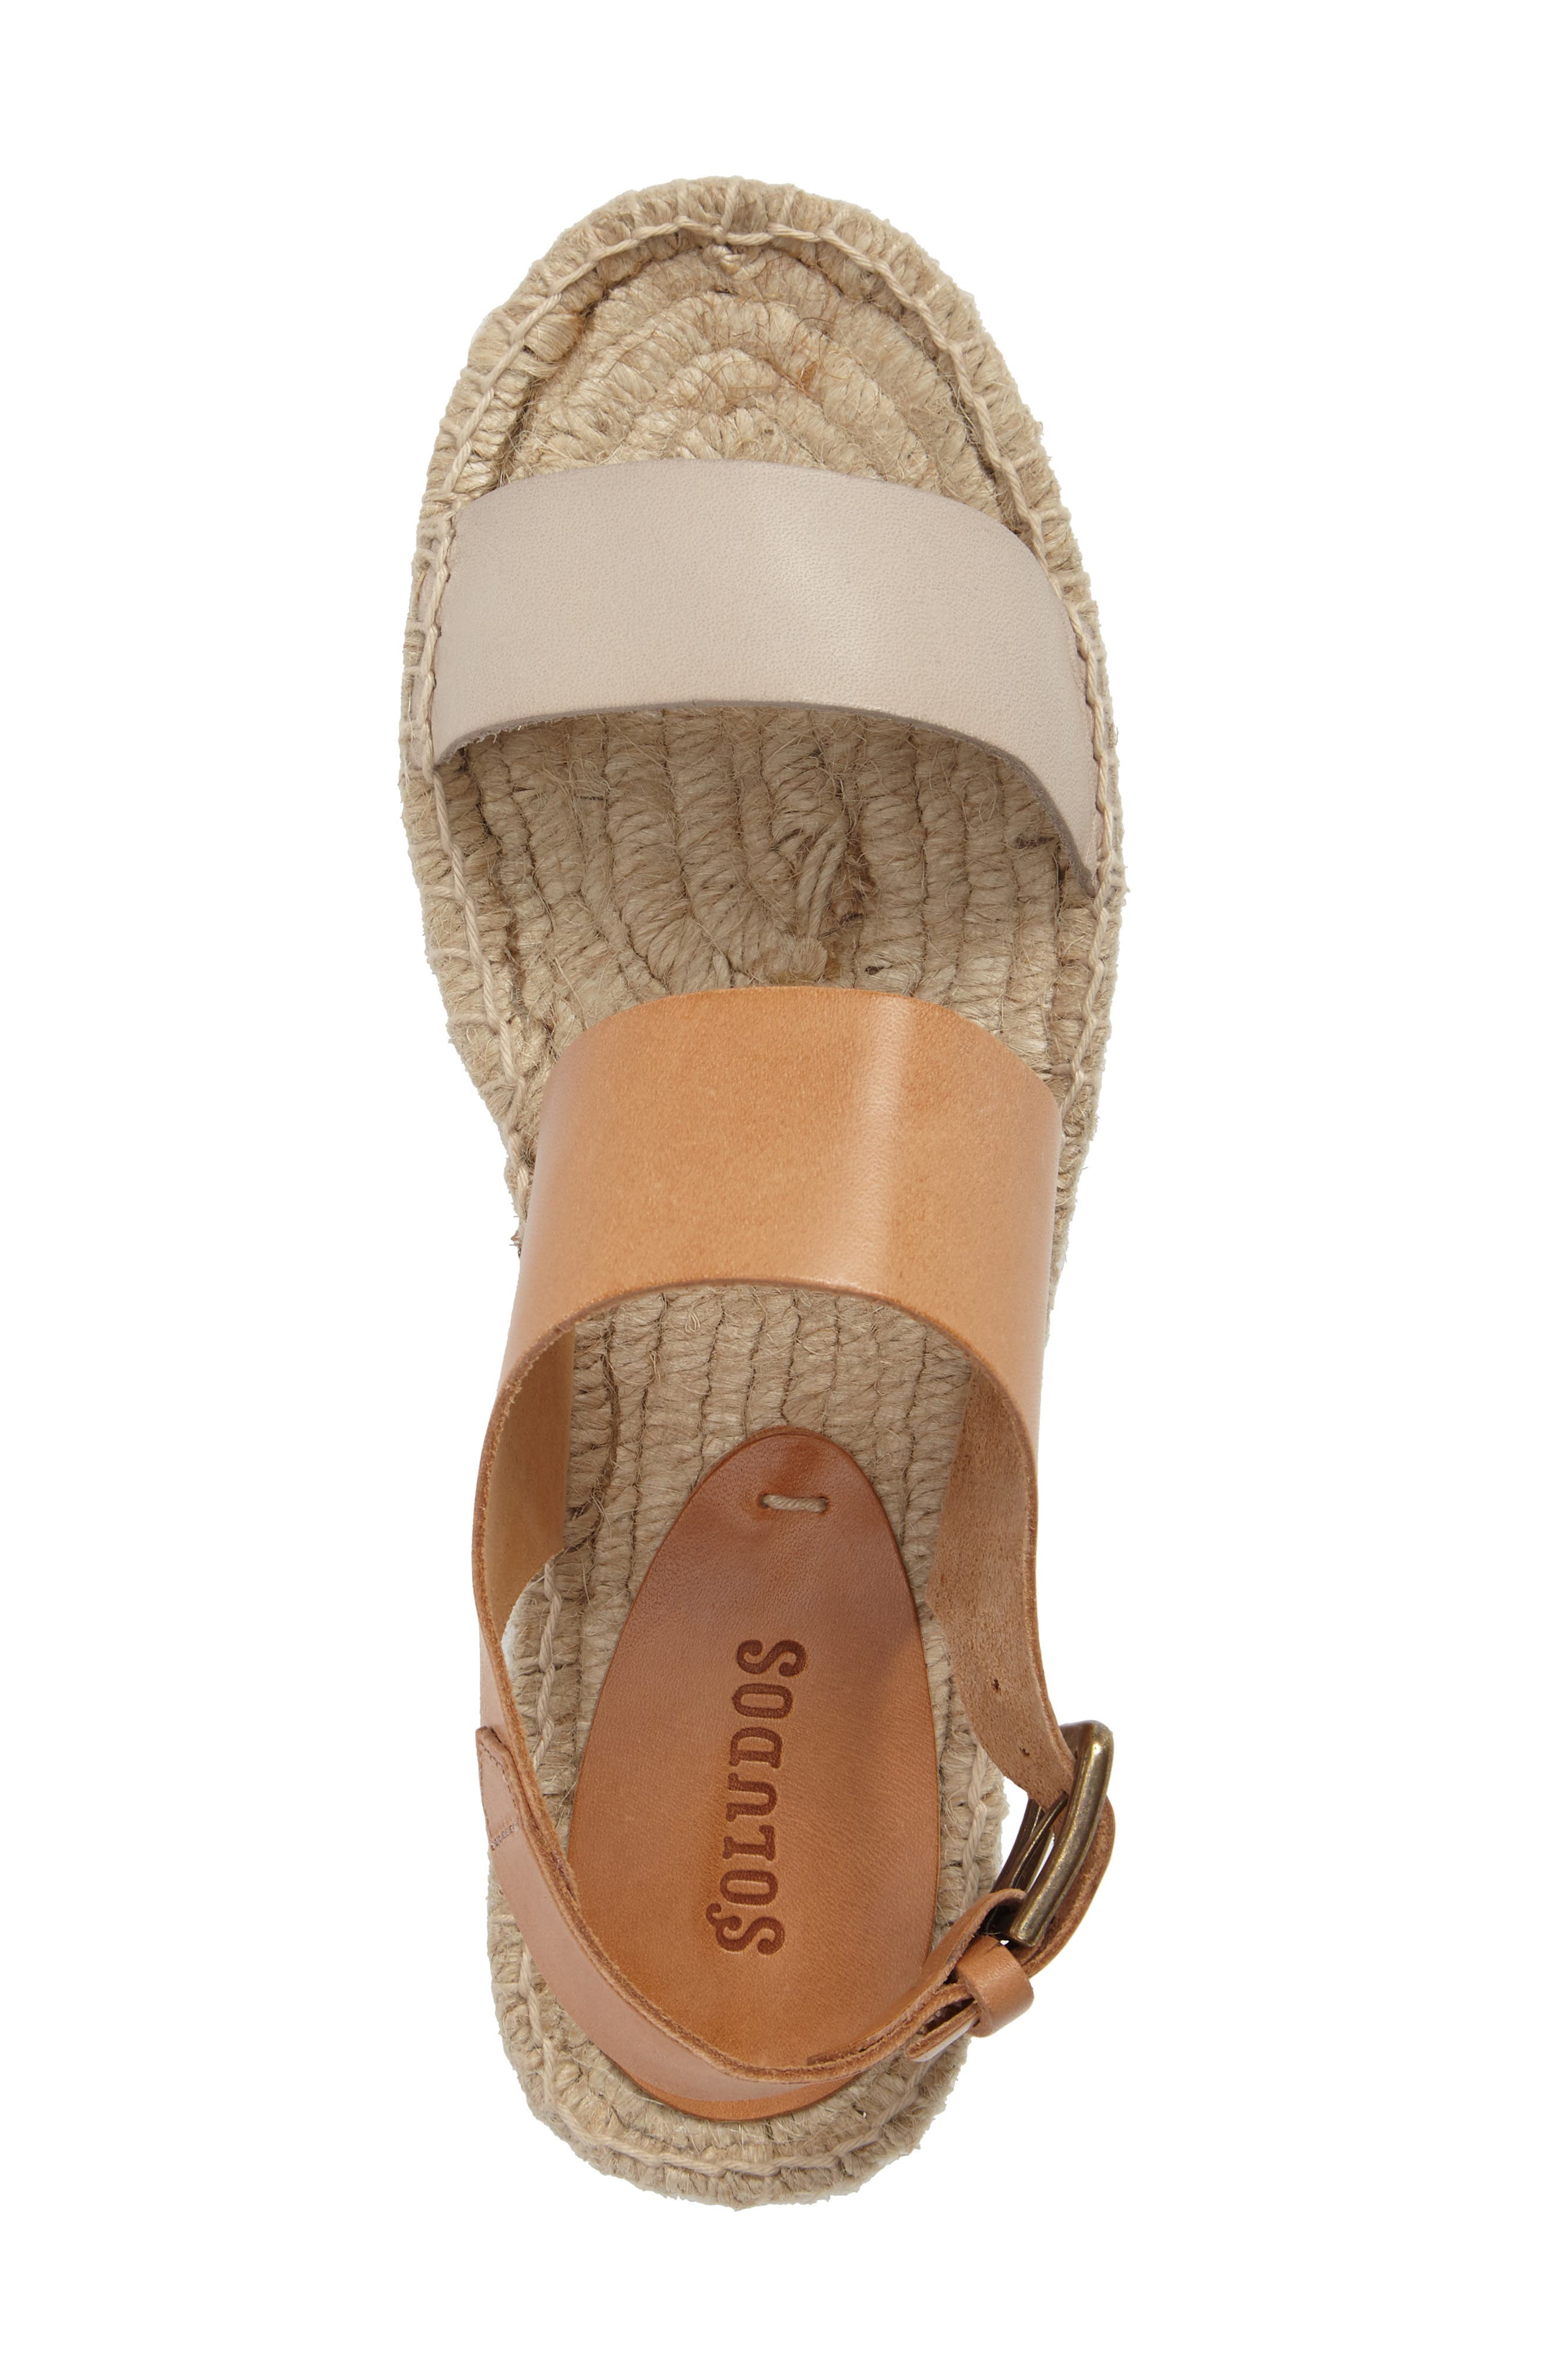 Platform Espadrille Sandal,                             Alternate thumbnail 5, color,                             250